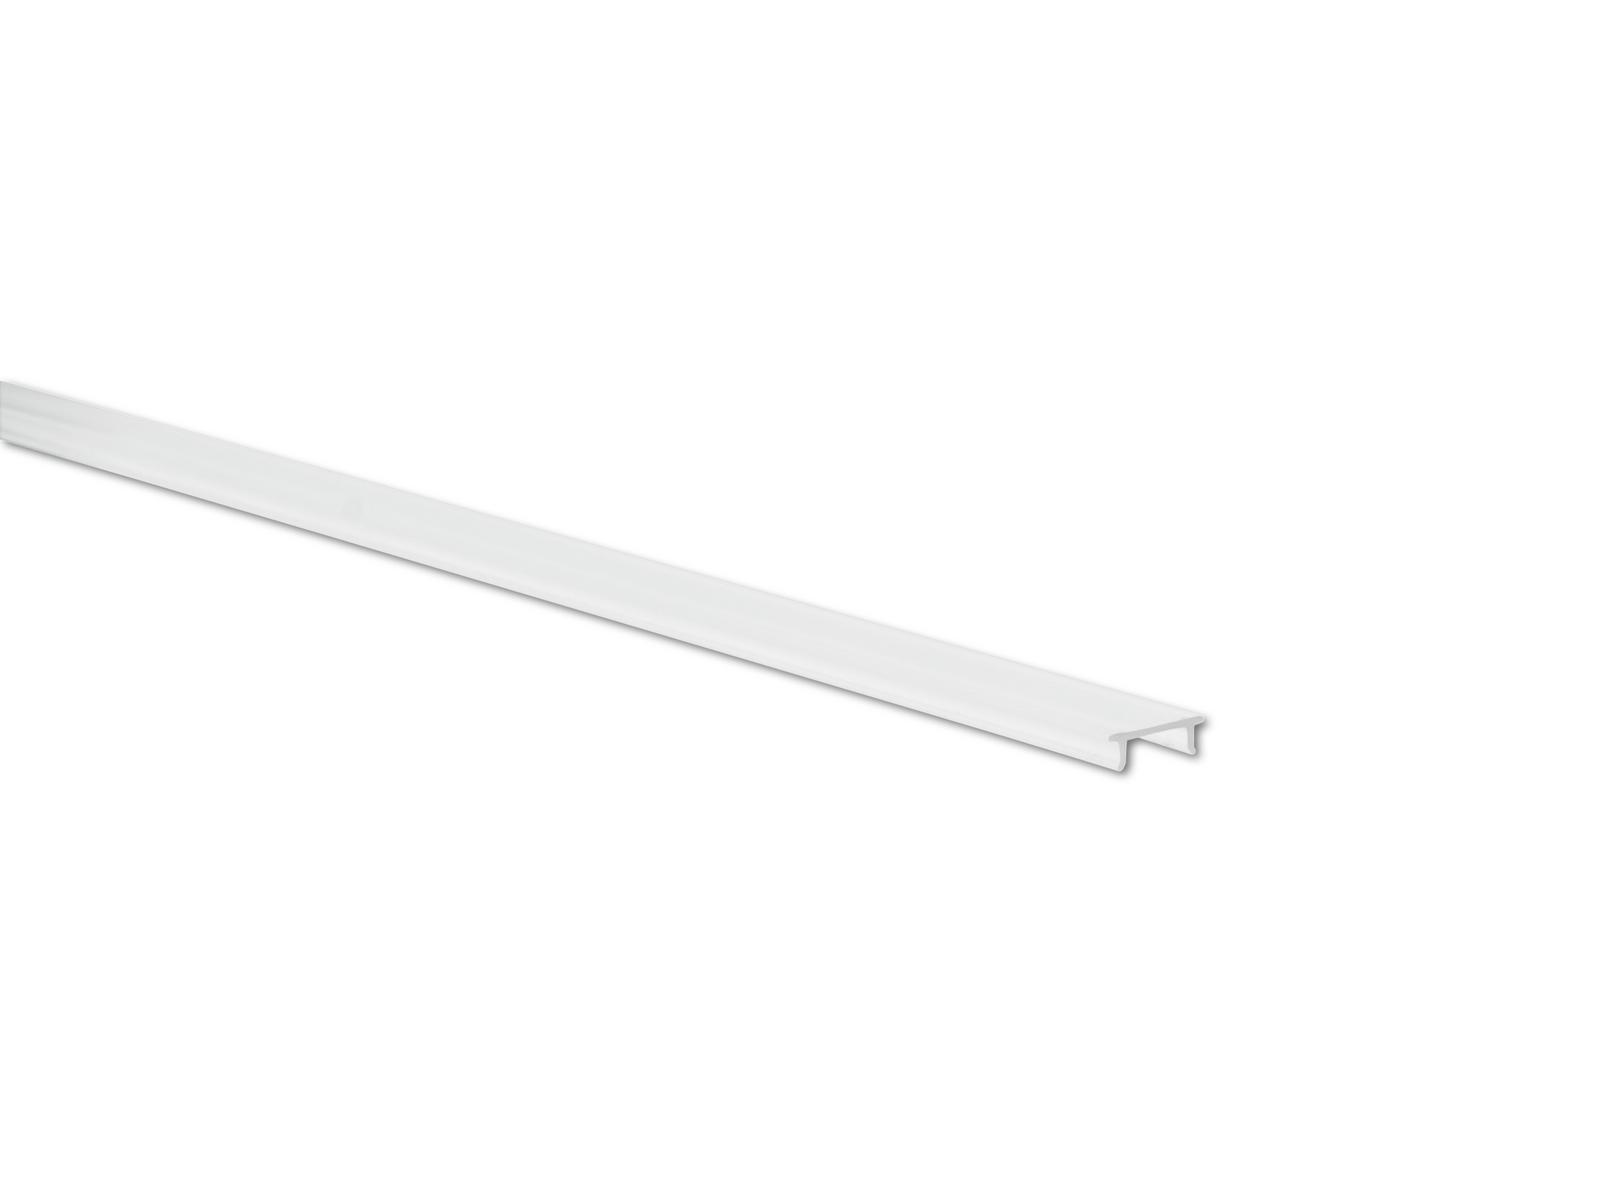 EUROLITE Deckel für LED Strip Profile clear 2m